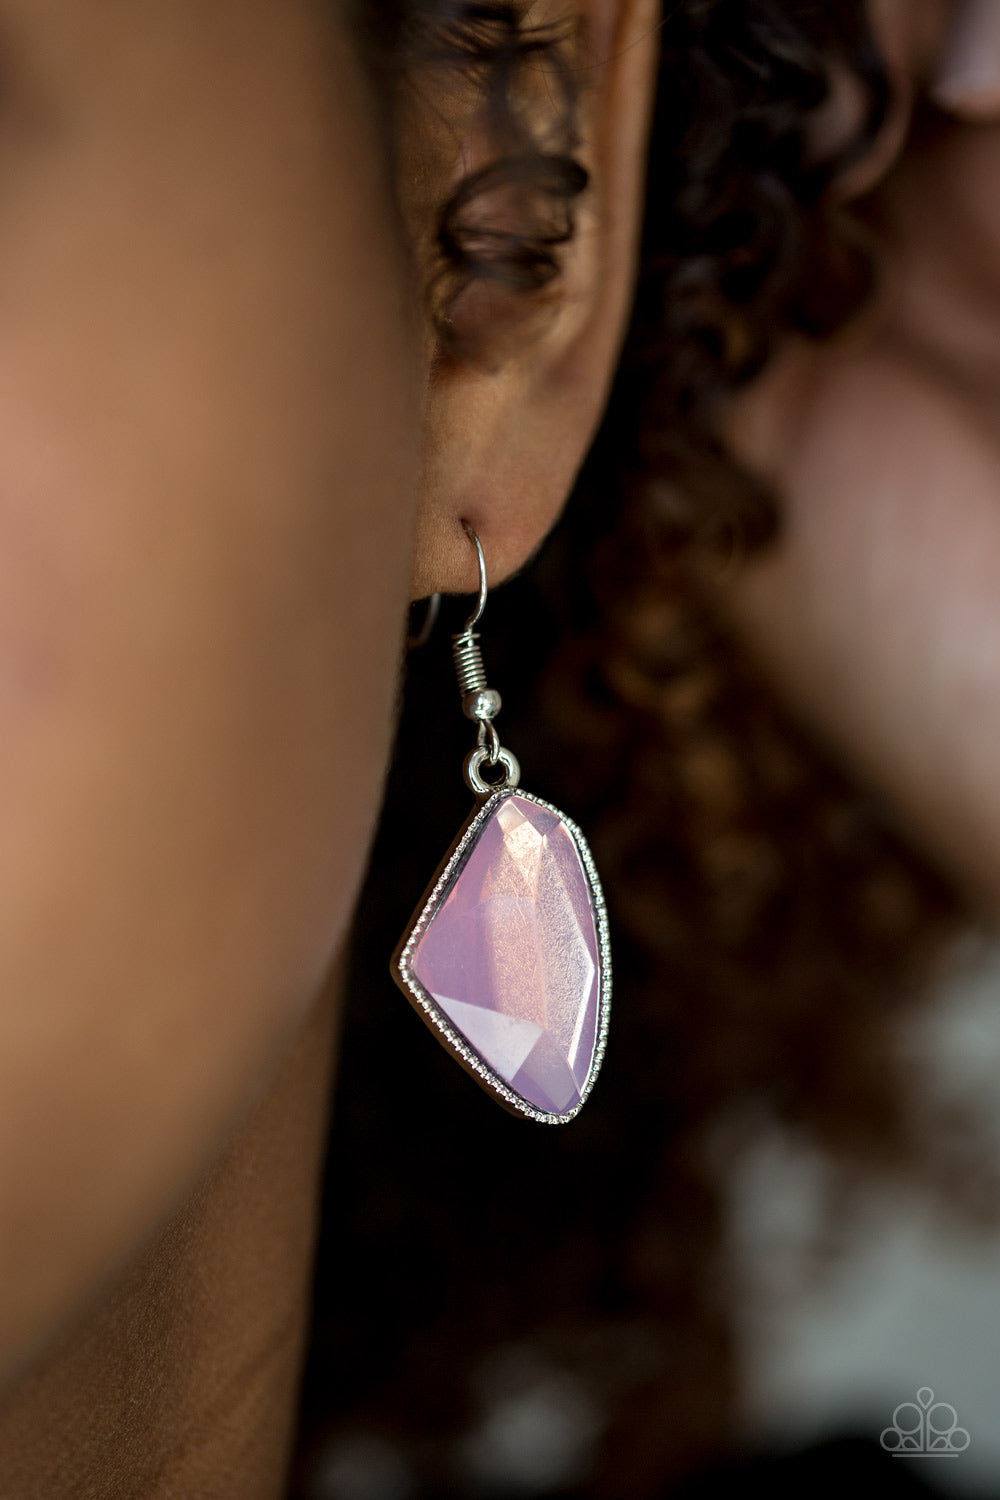 Mystic Mist - Pink Earrings - SavvyChicksJewelry